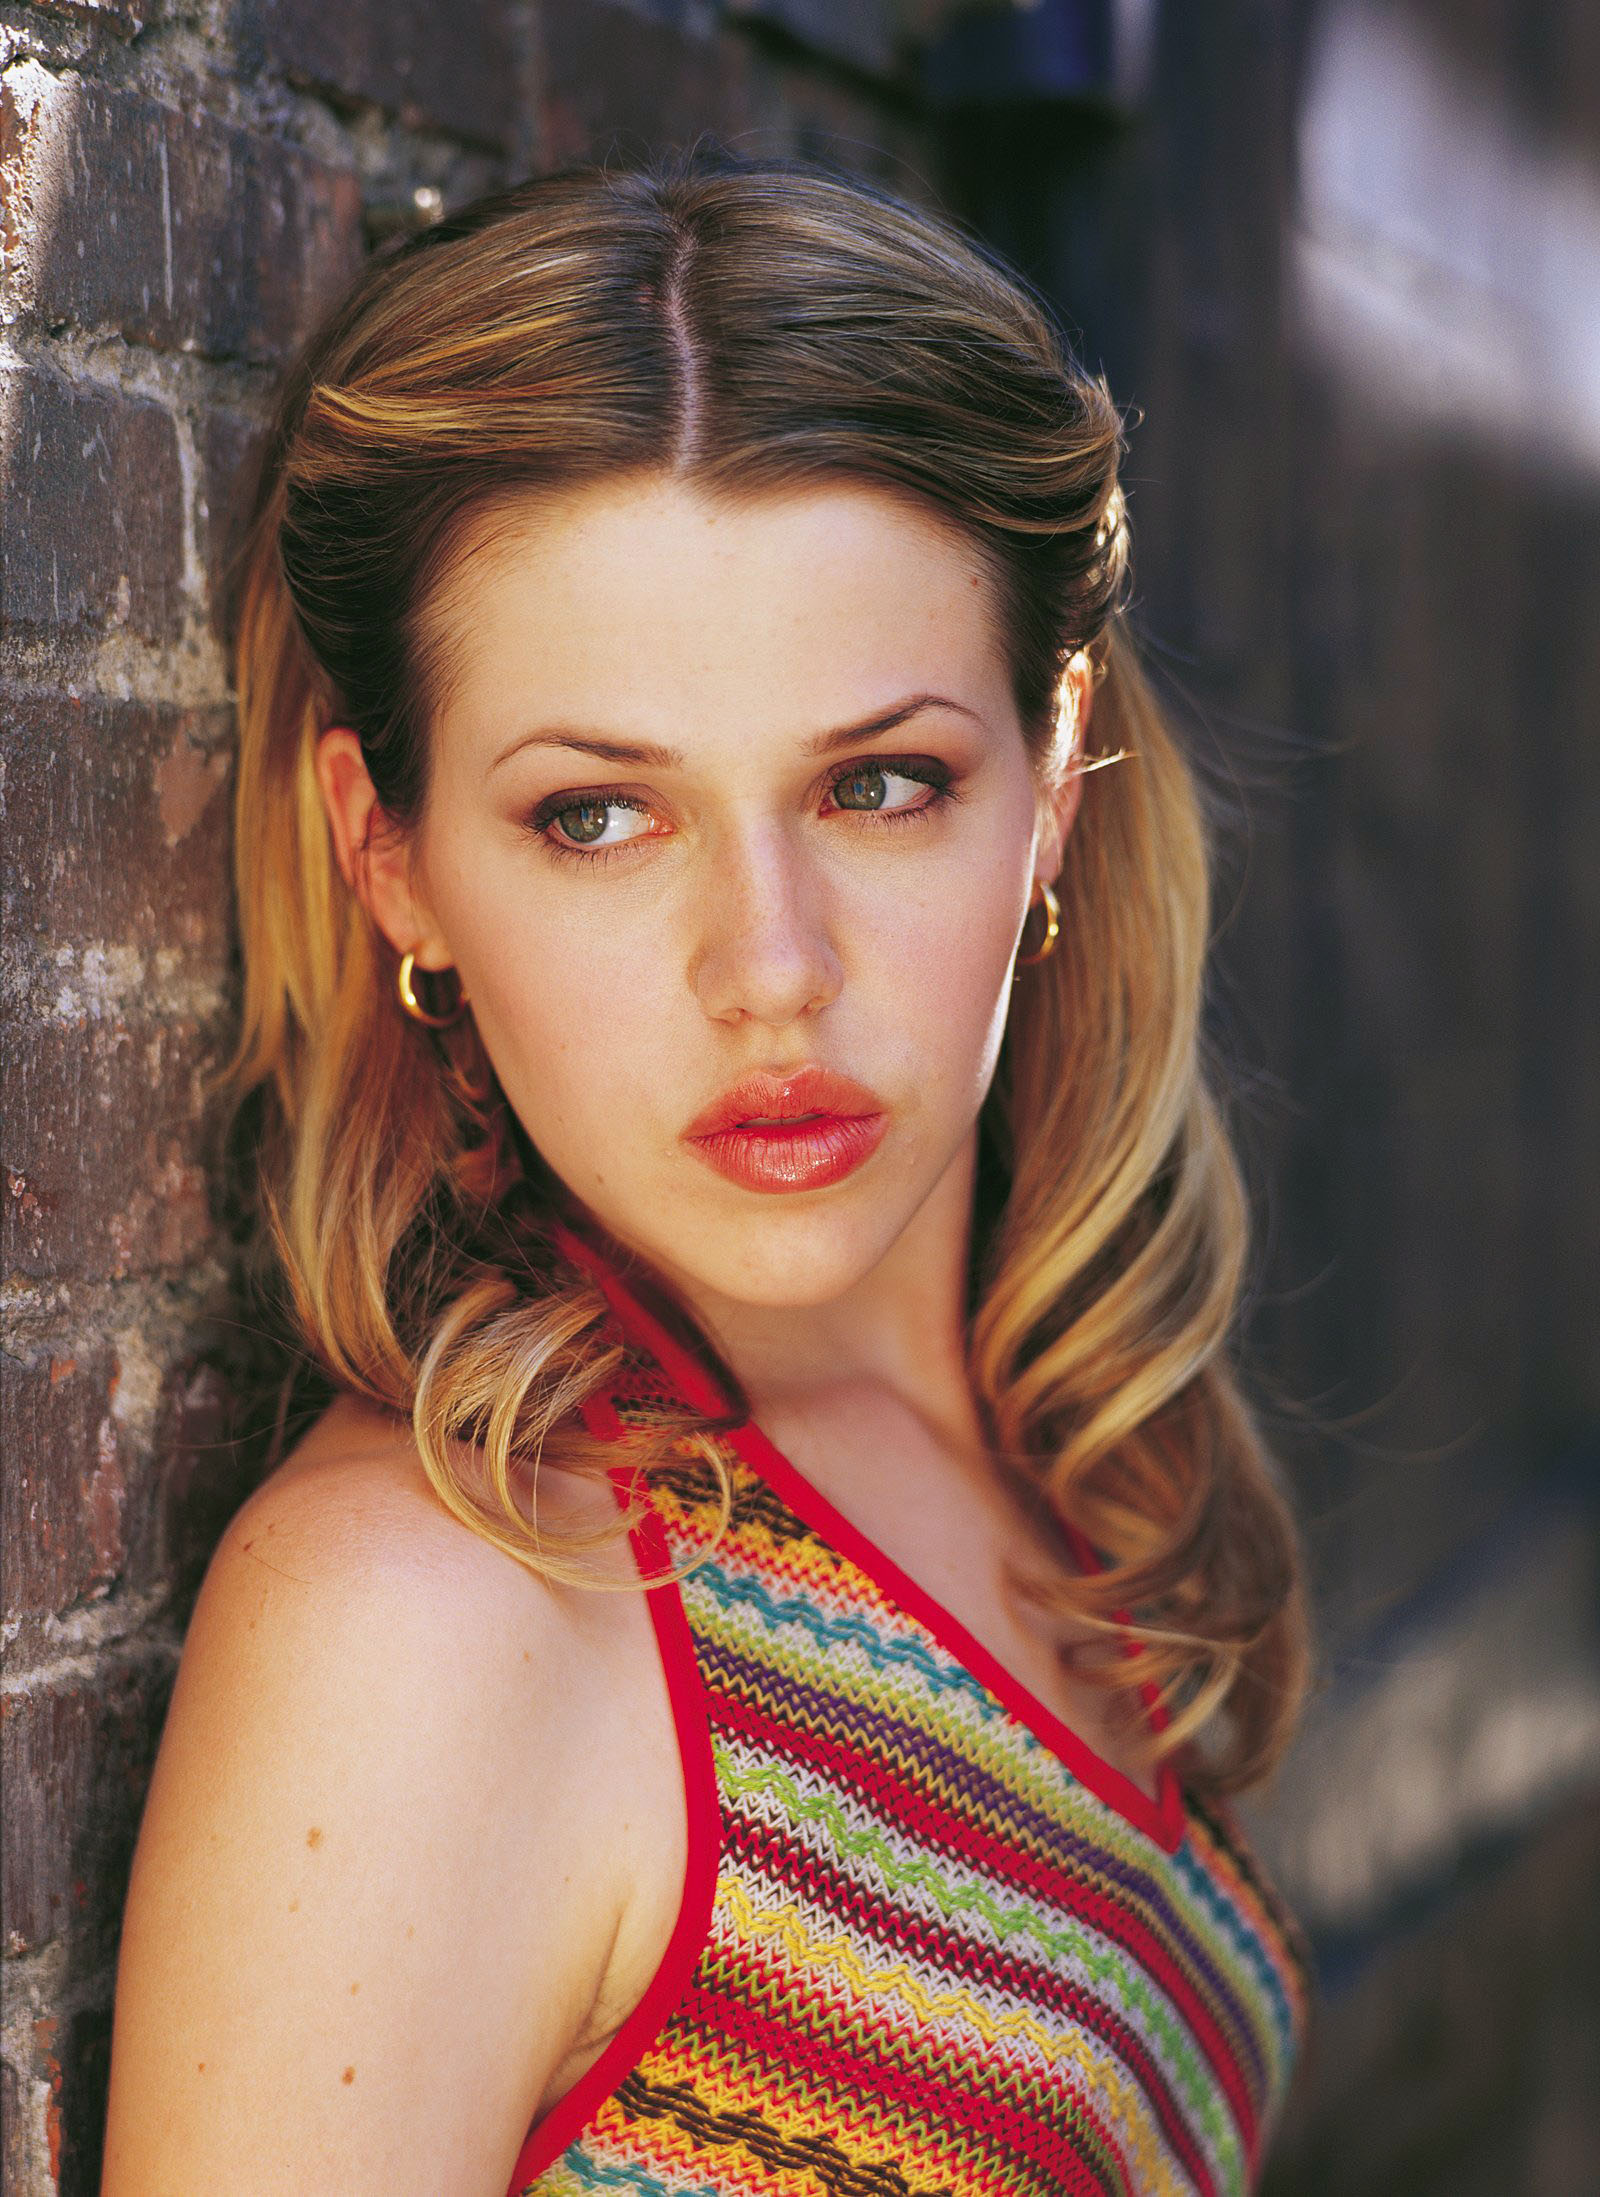 Roswell TV Series, Majandra Delfino as Maria DeLuca (dvdbash.wordpress.com) - majandra_delfino_maria_deluca_wall_dvdbash